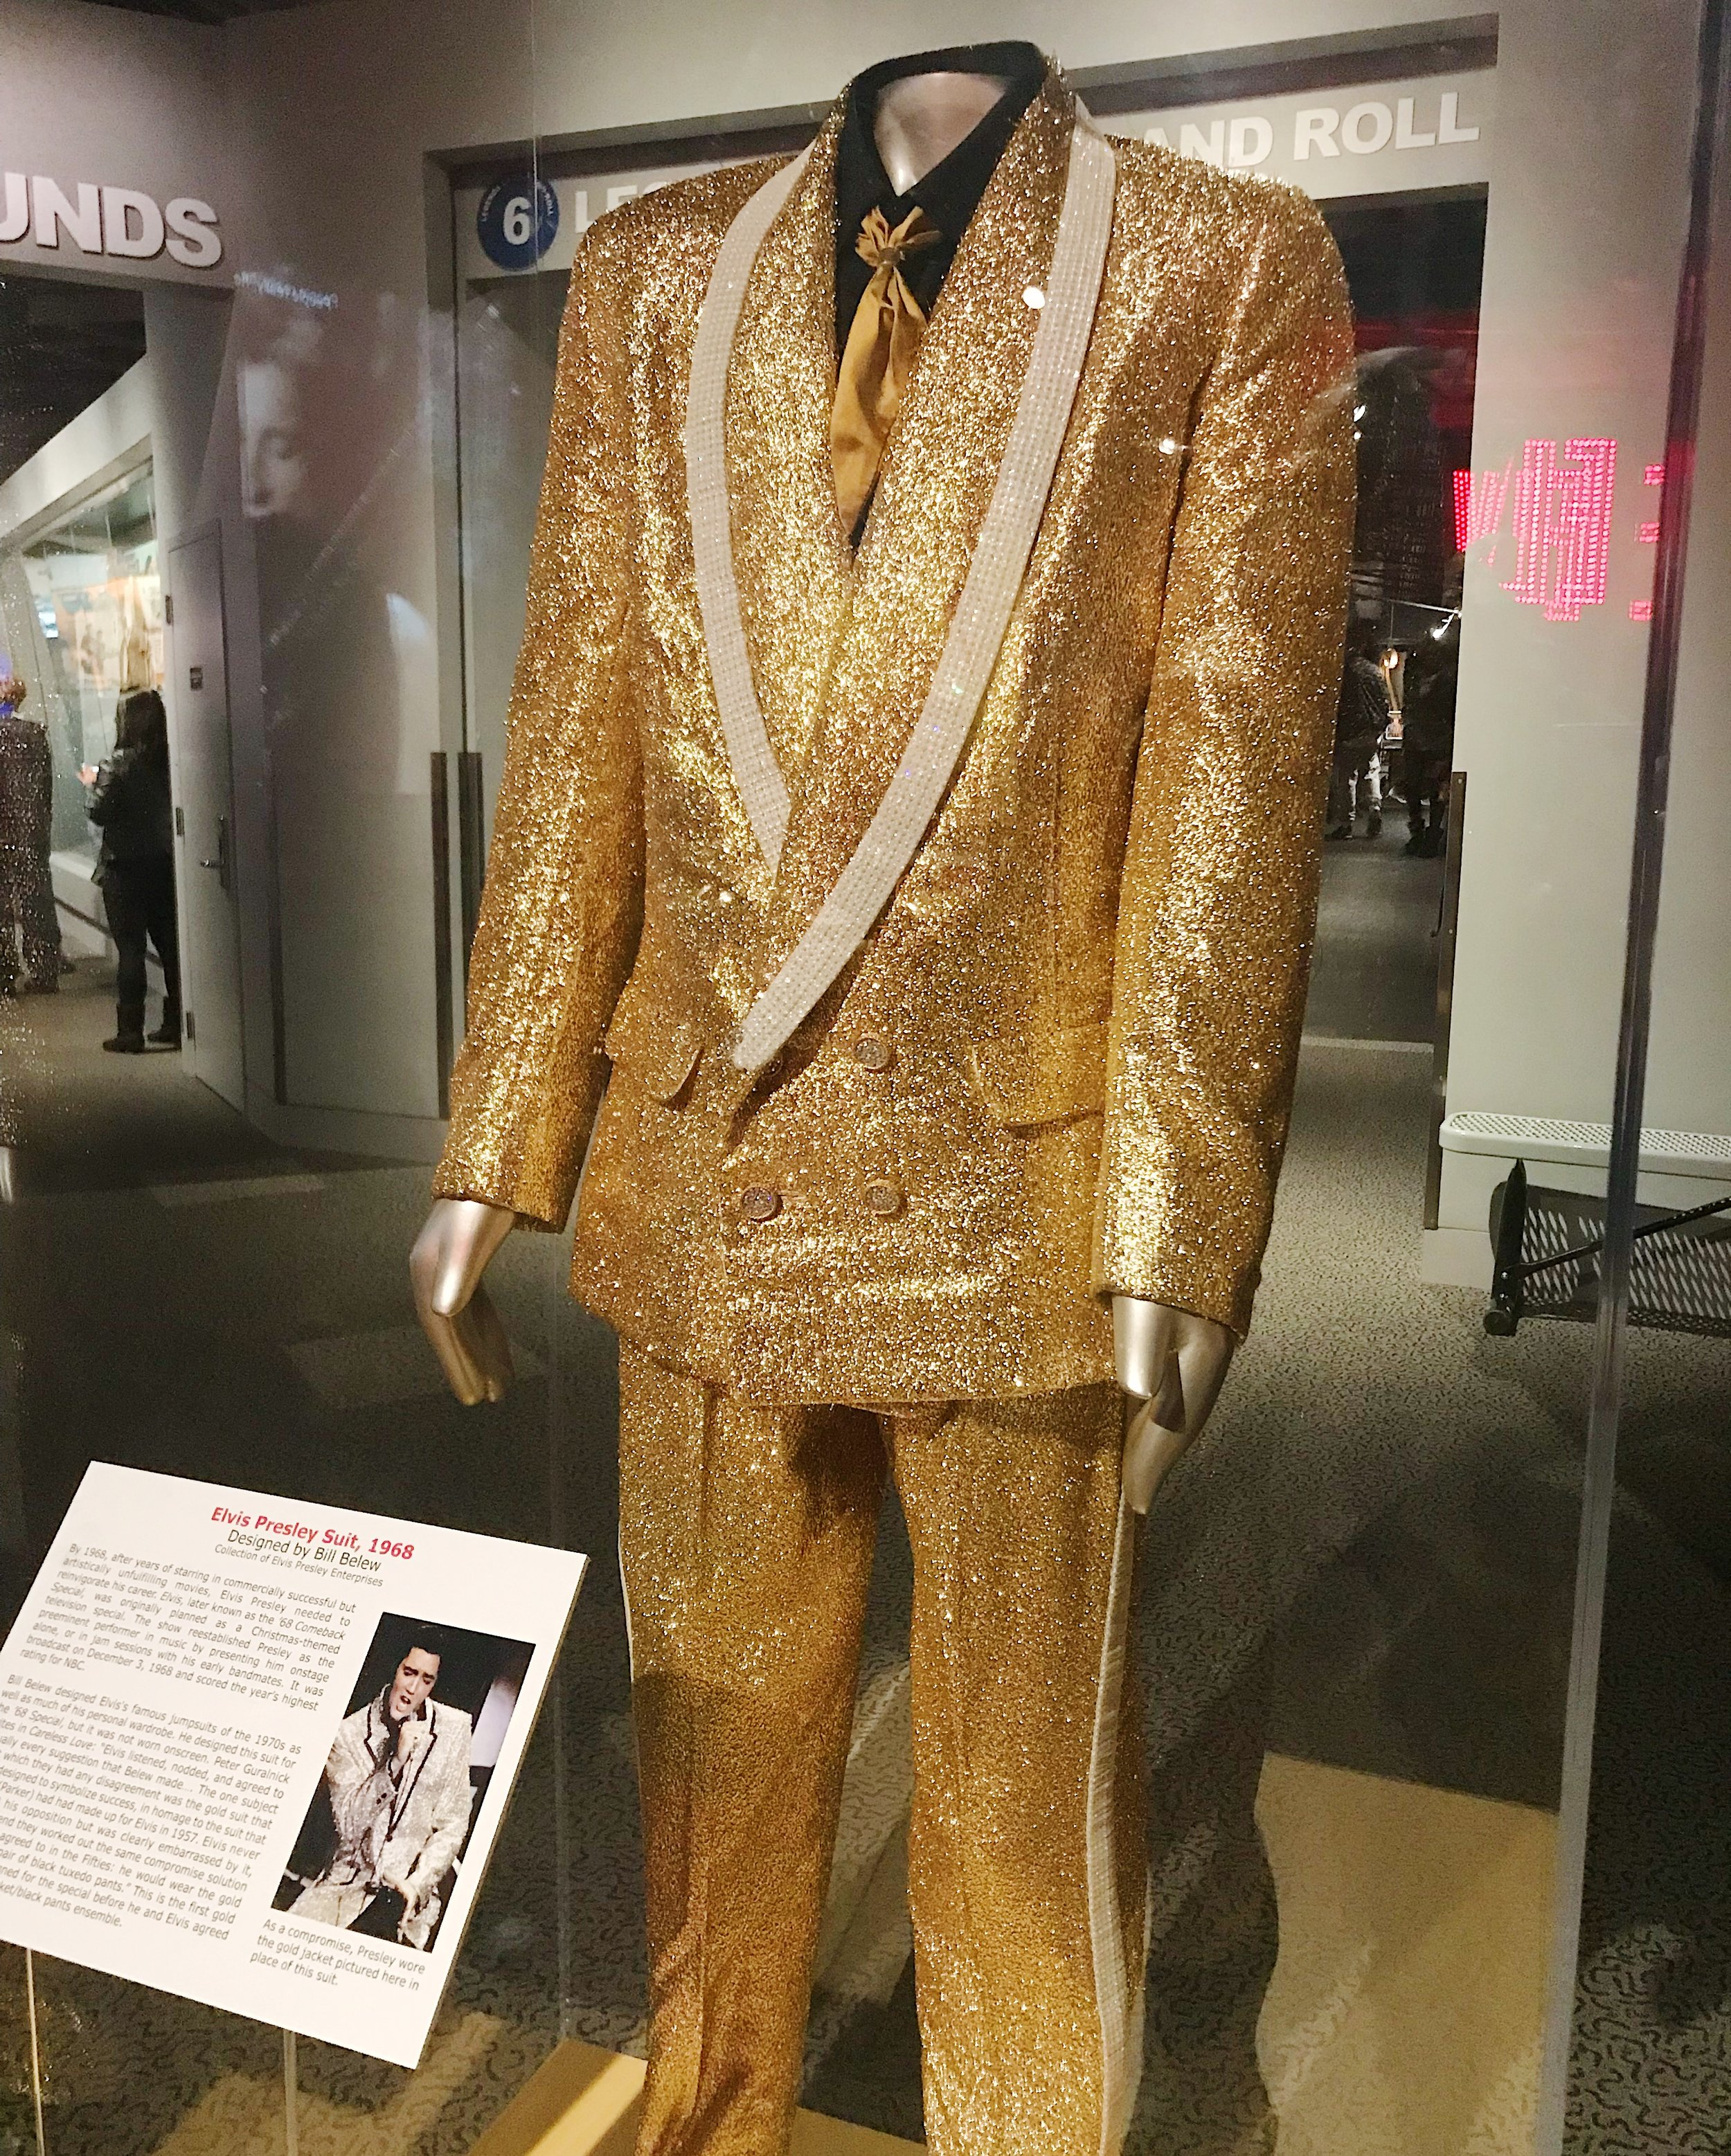 A gold glitter suit made for Elvis himself.